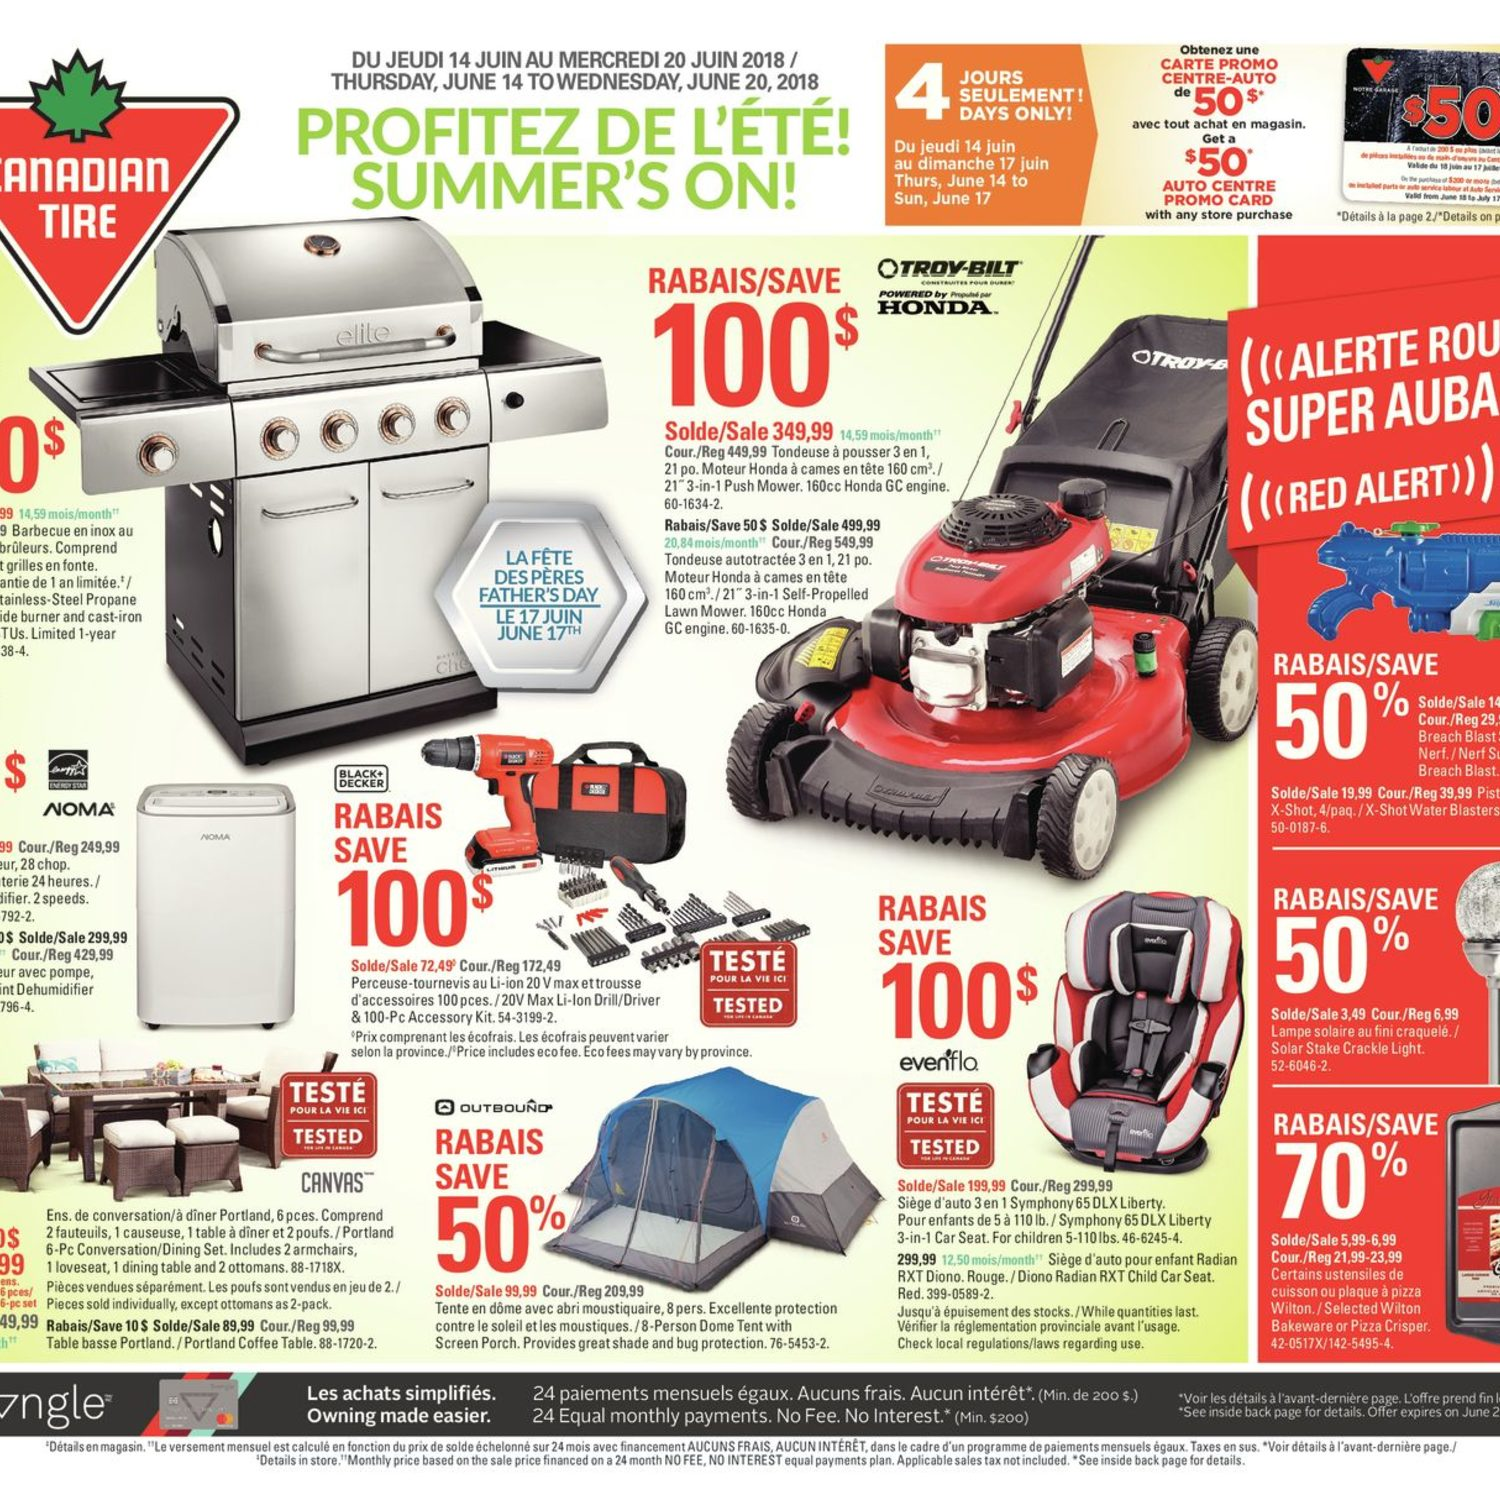 Canadian Tire Weekly Flyer Summers On Jun 14 20 Us Blaster Products Car Audio Wiring Kits Usb 6128